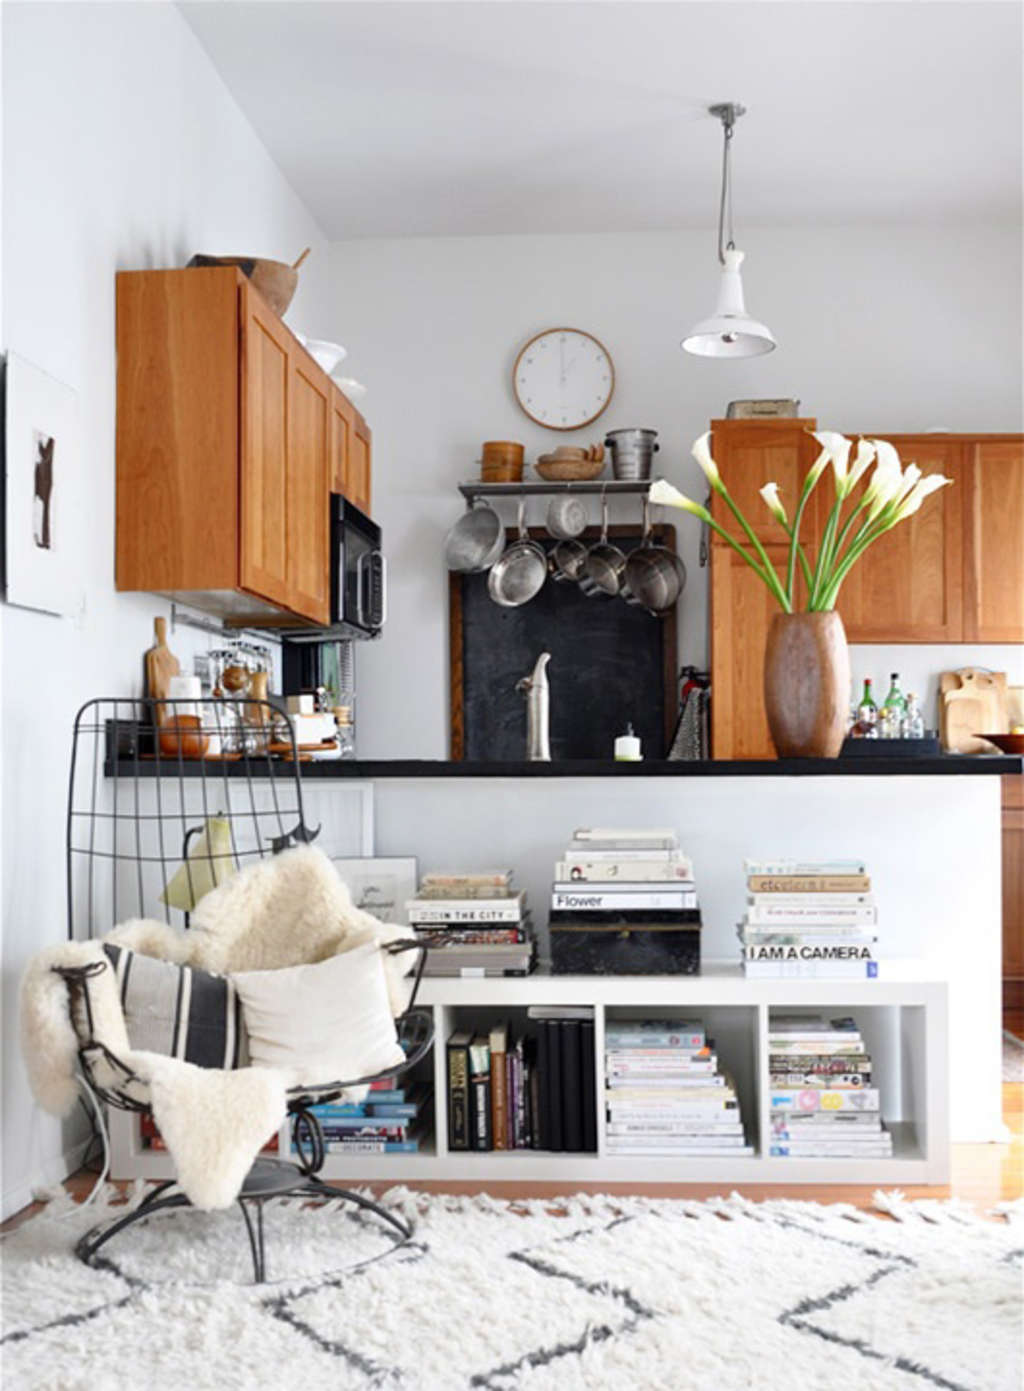 Kitchen Colors: Black, Brown, and White | Kitchn